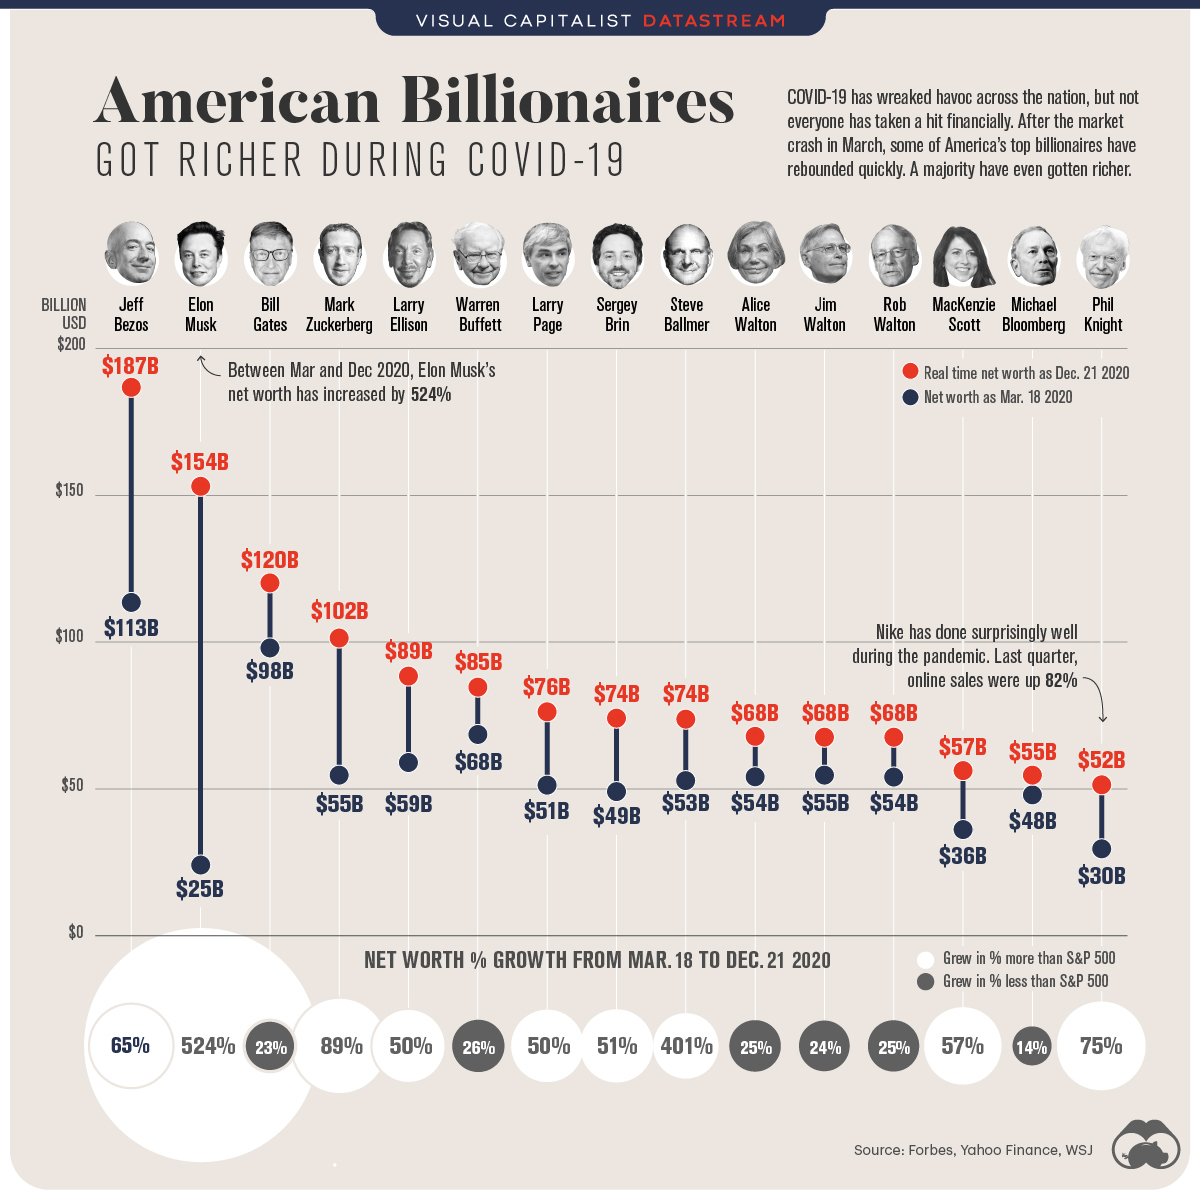 Chart demonstrating billionaires getting richer during covid 19; Bezos jumped from 113 Billion in March 2020 to 187 Billion in Dec 2020